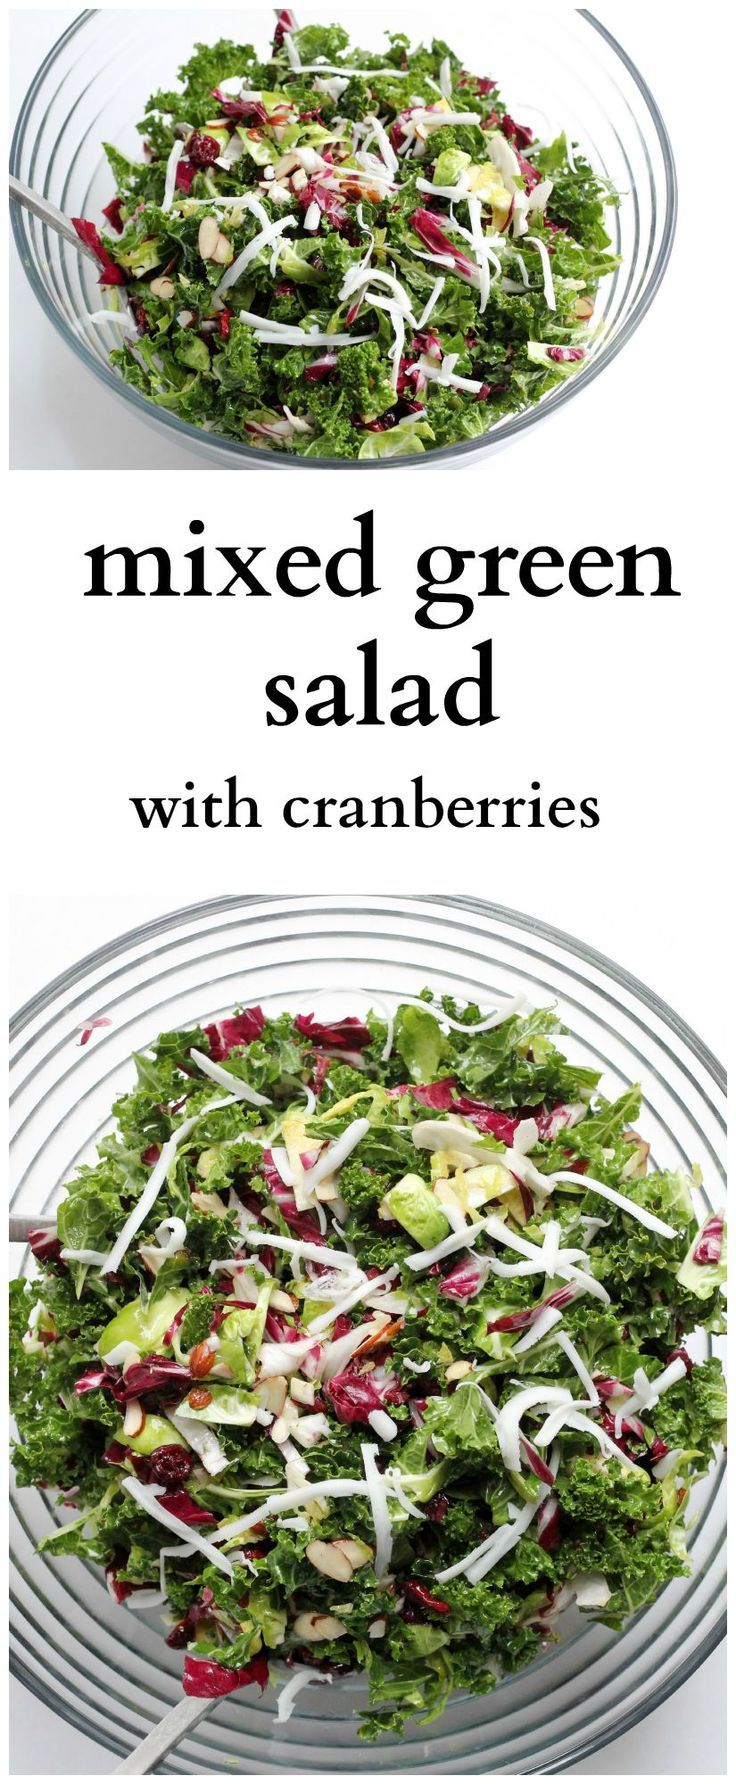 This salad is so delicious and perfect for a holiday or family dinner!